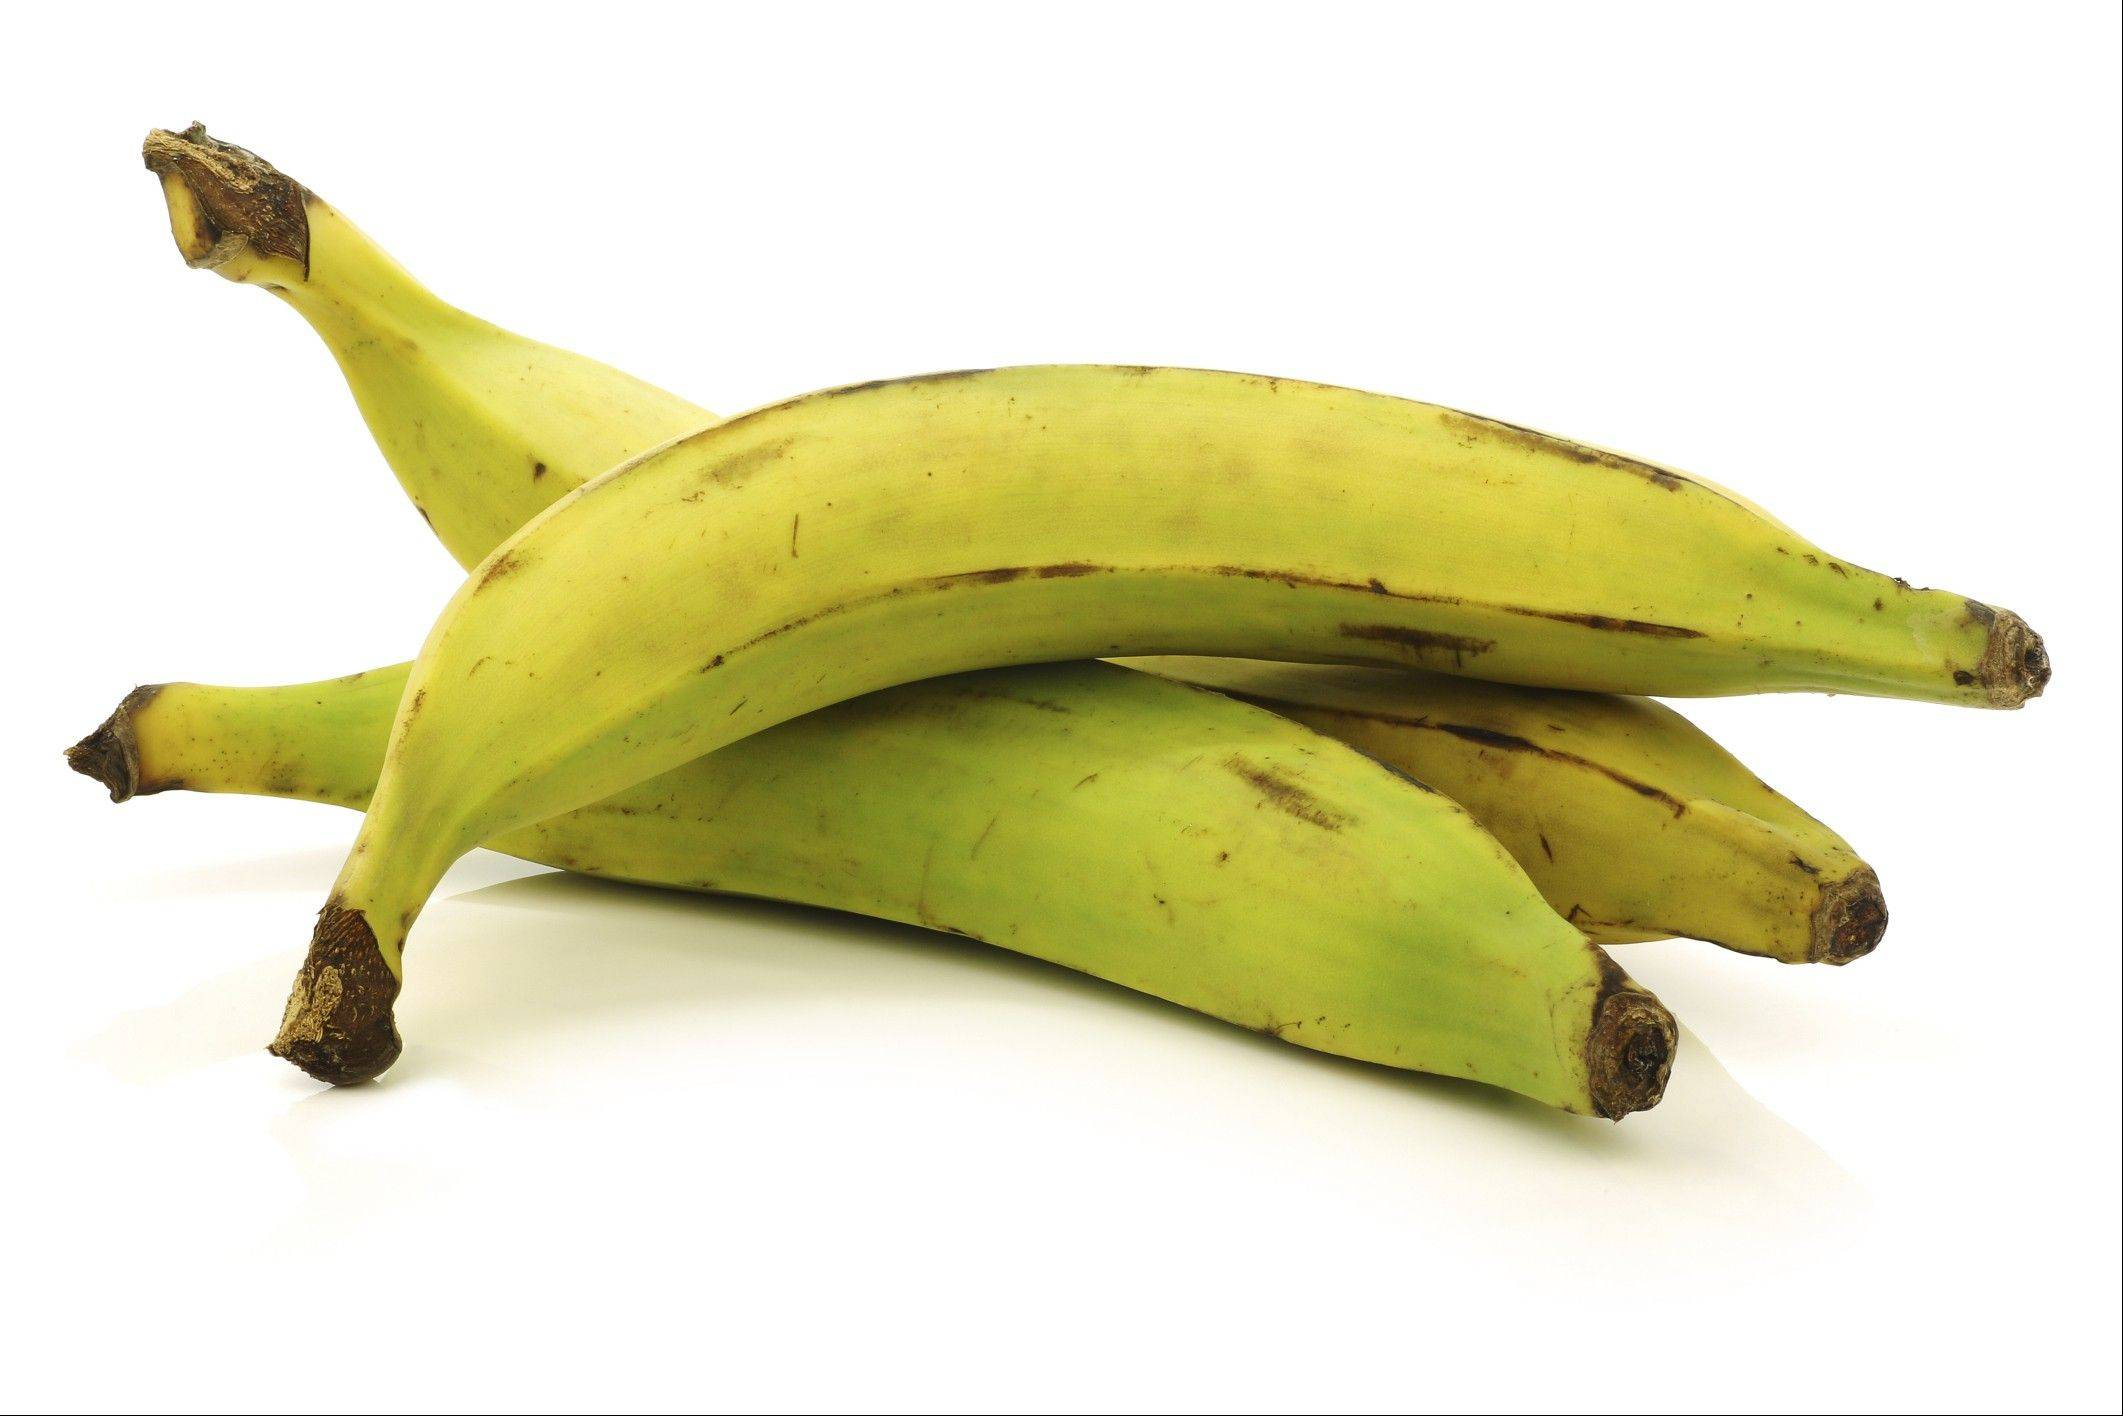 Plantains